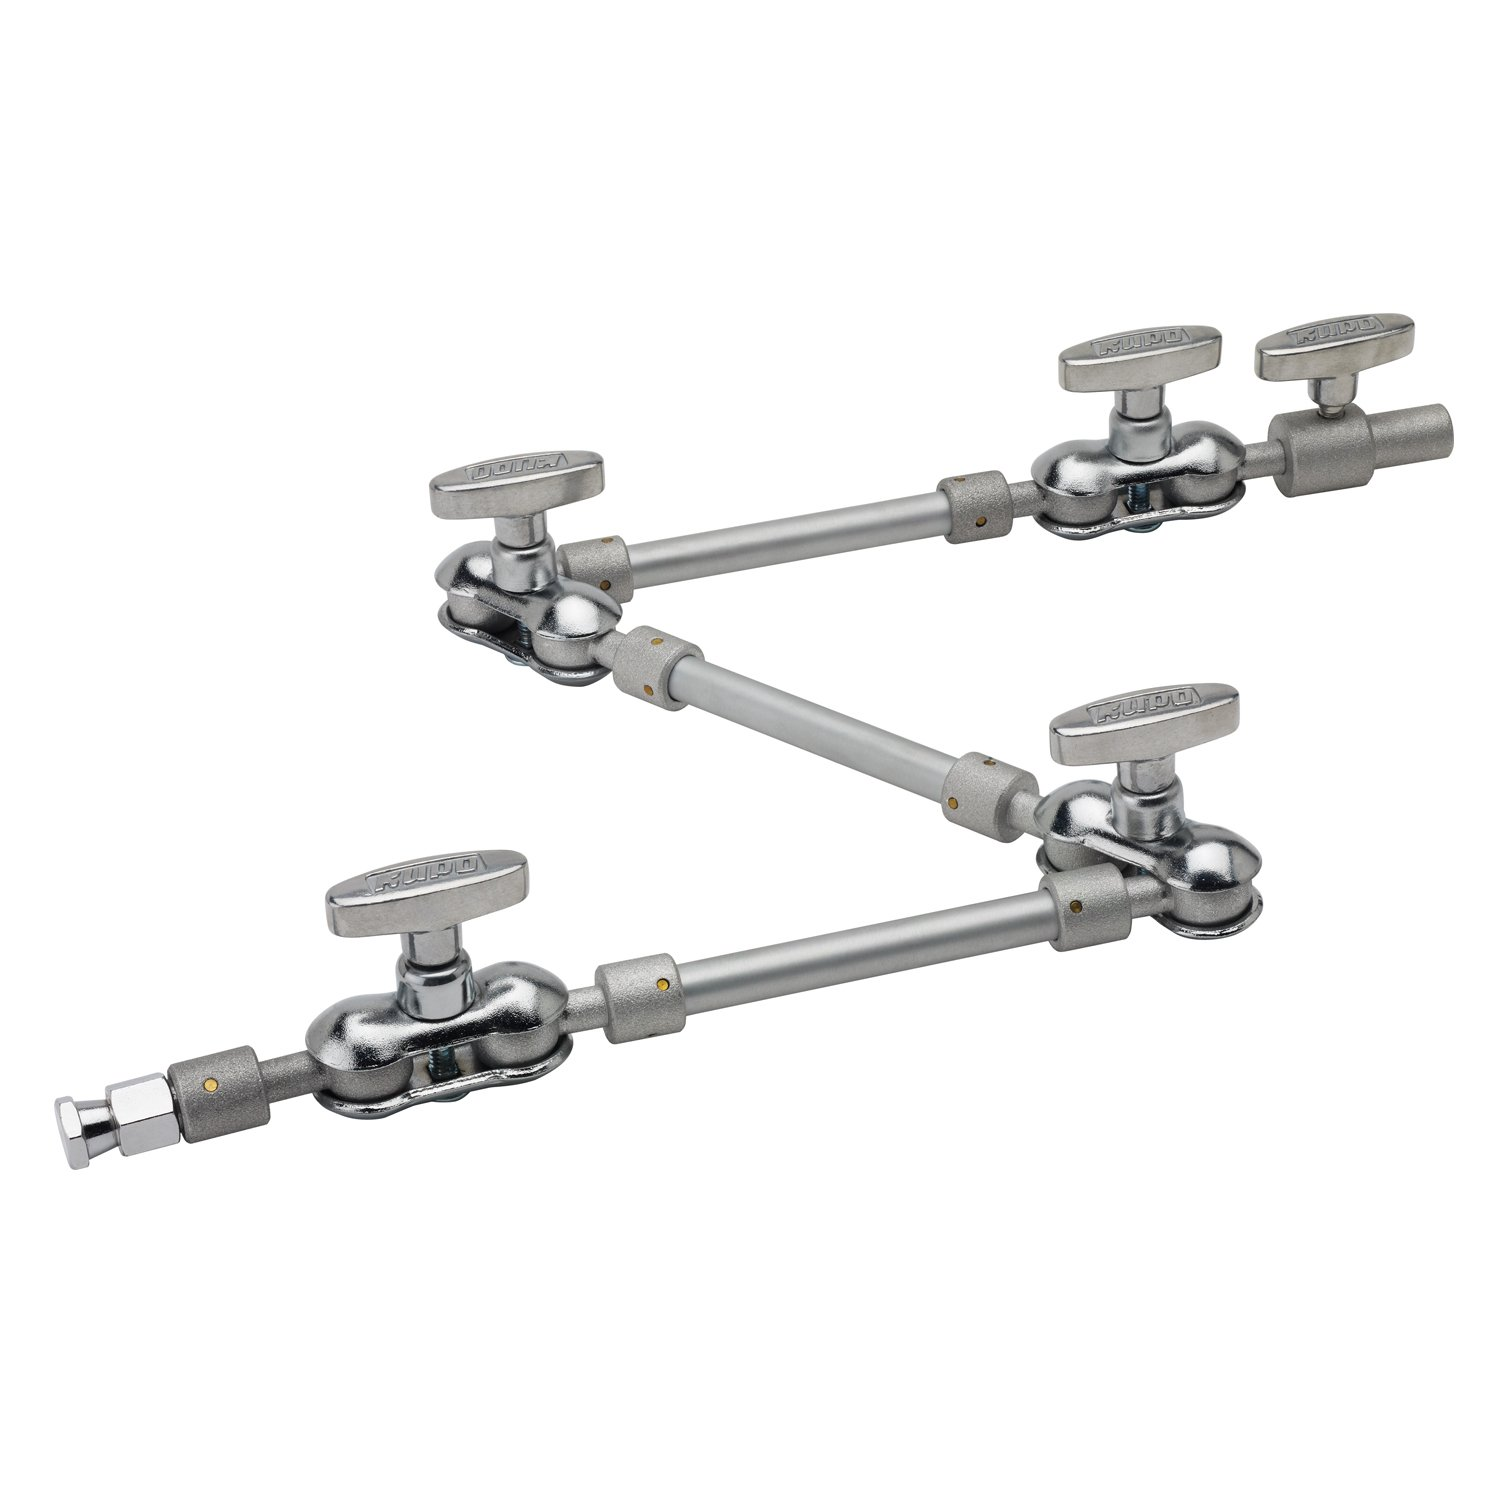 Kupo Articulated Arm with Baby 5/8in (16mm) Stud with 3/8in-16 Female (KG300512) by Kupo